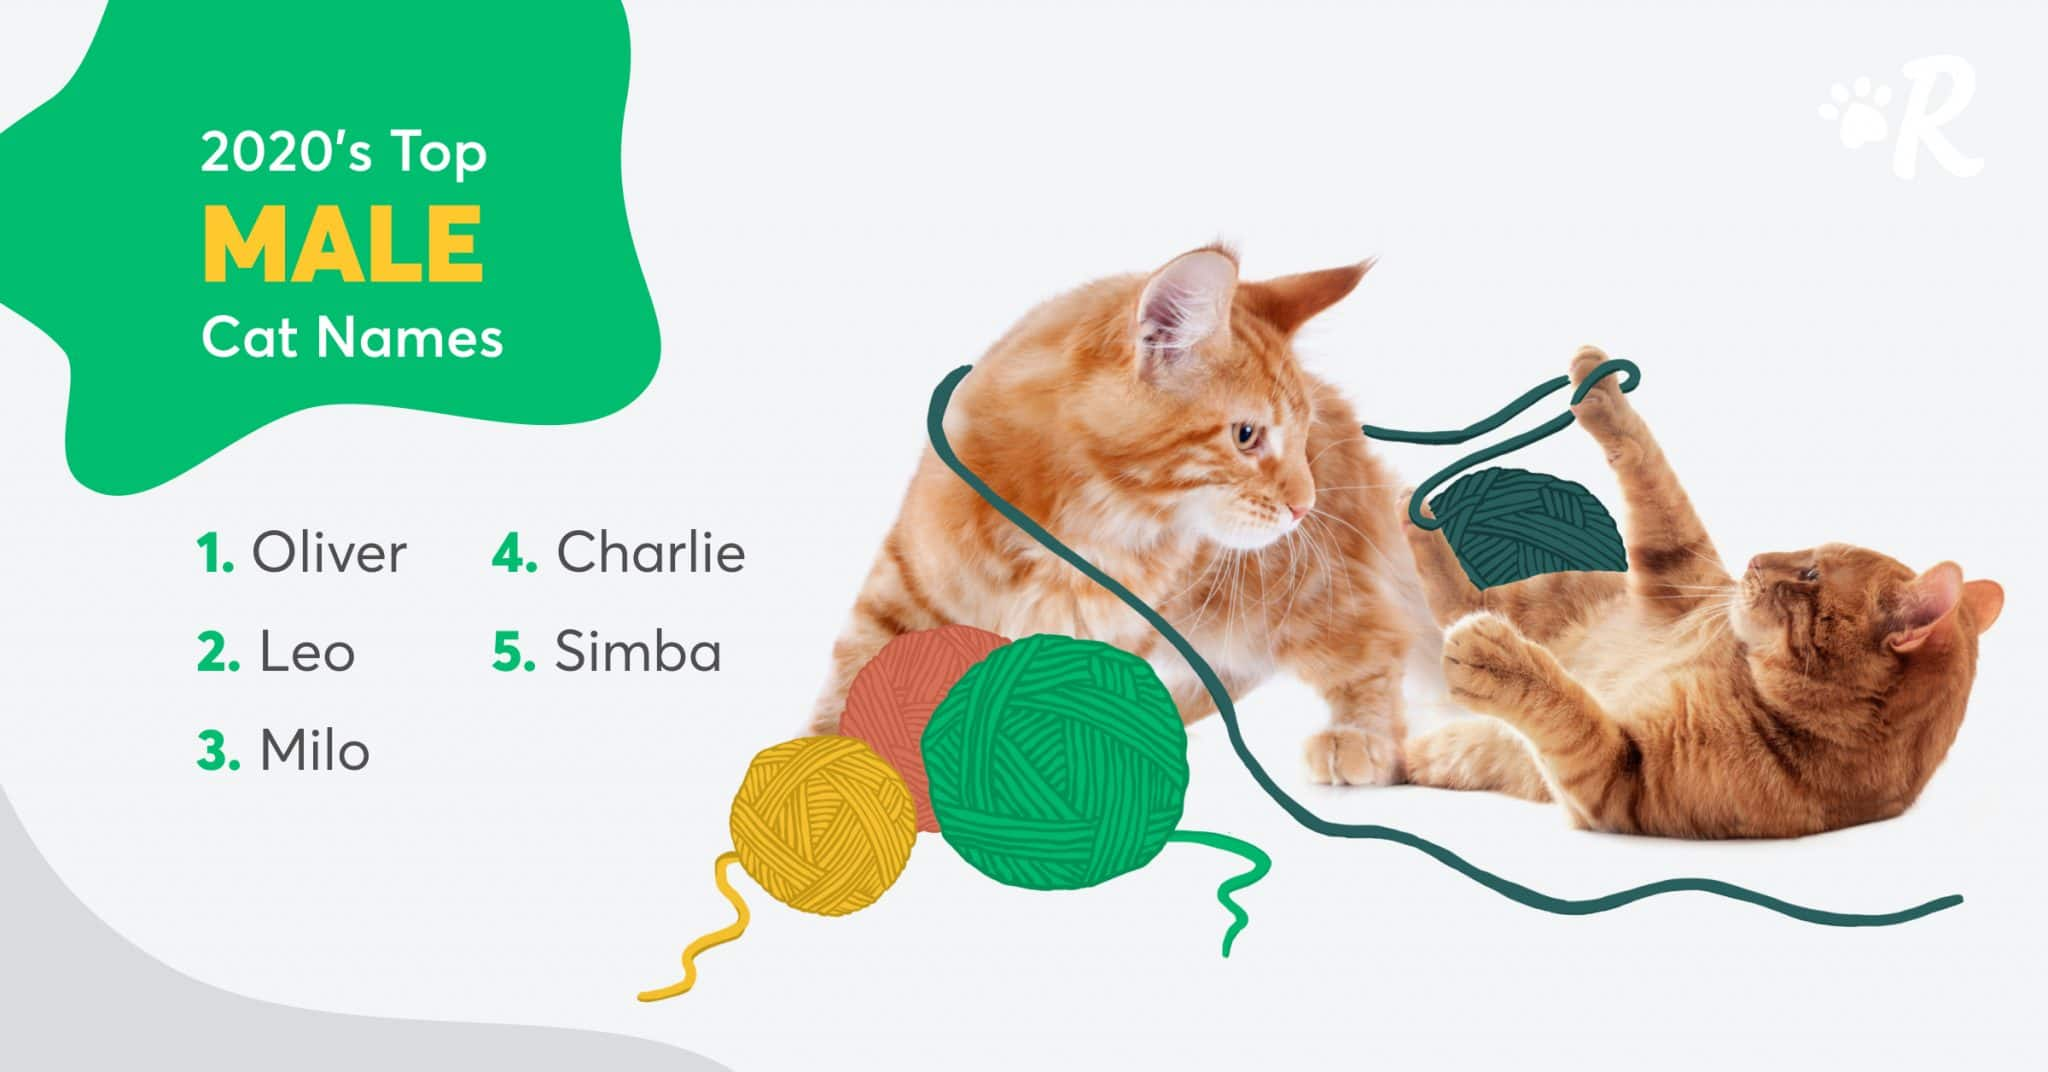 Graphic of top 5 most popular male cat names: Oliver, Leo, Milo, Charlie, Simba